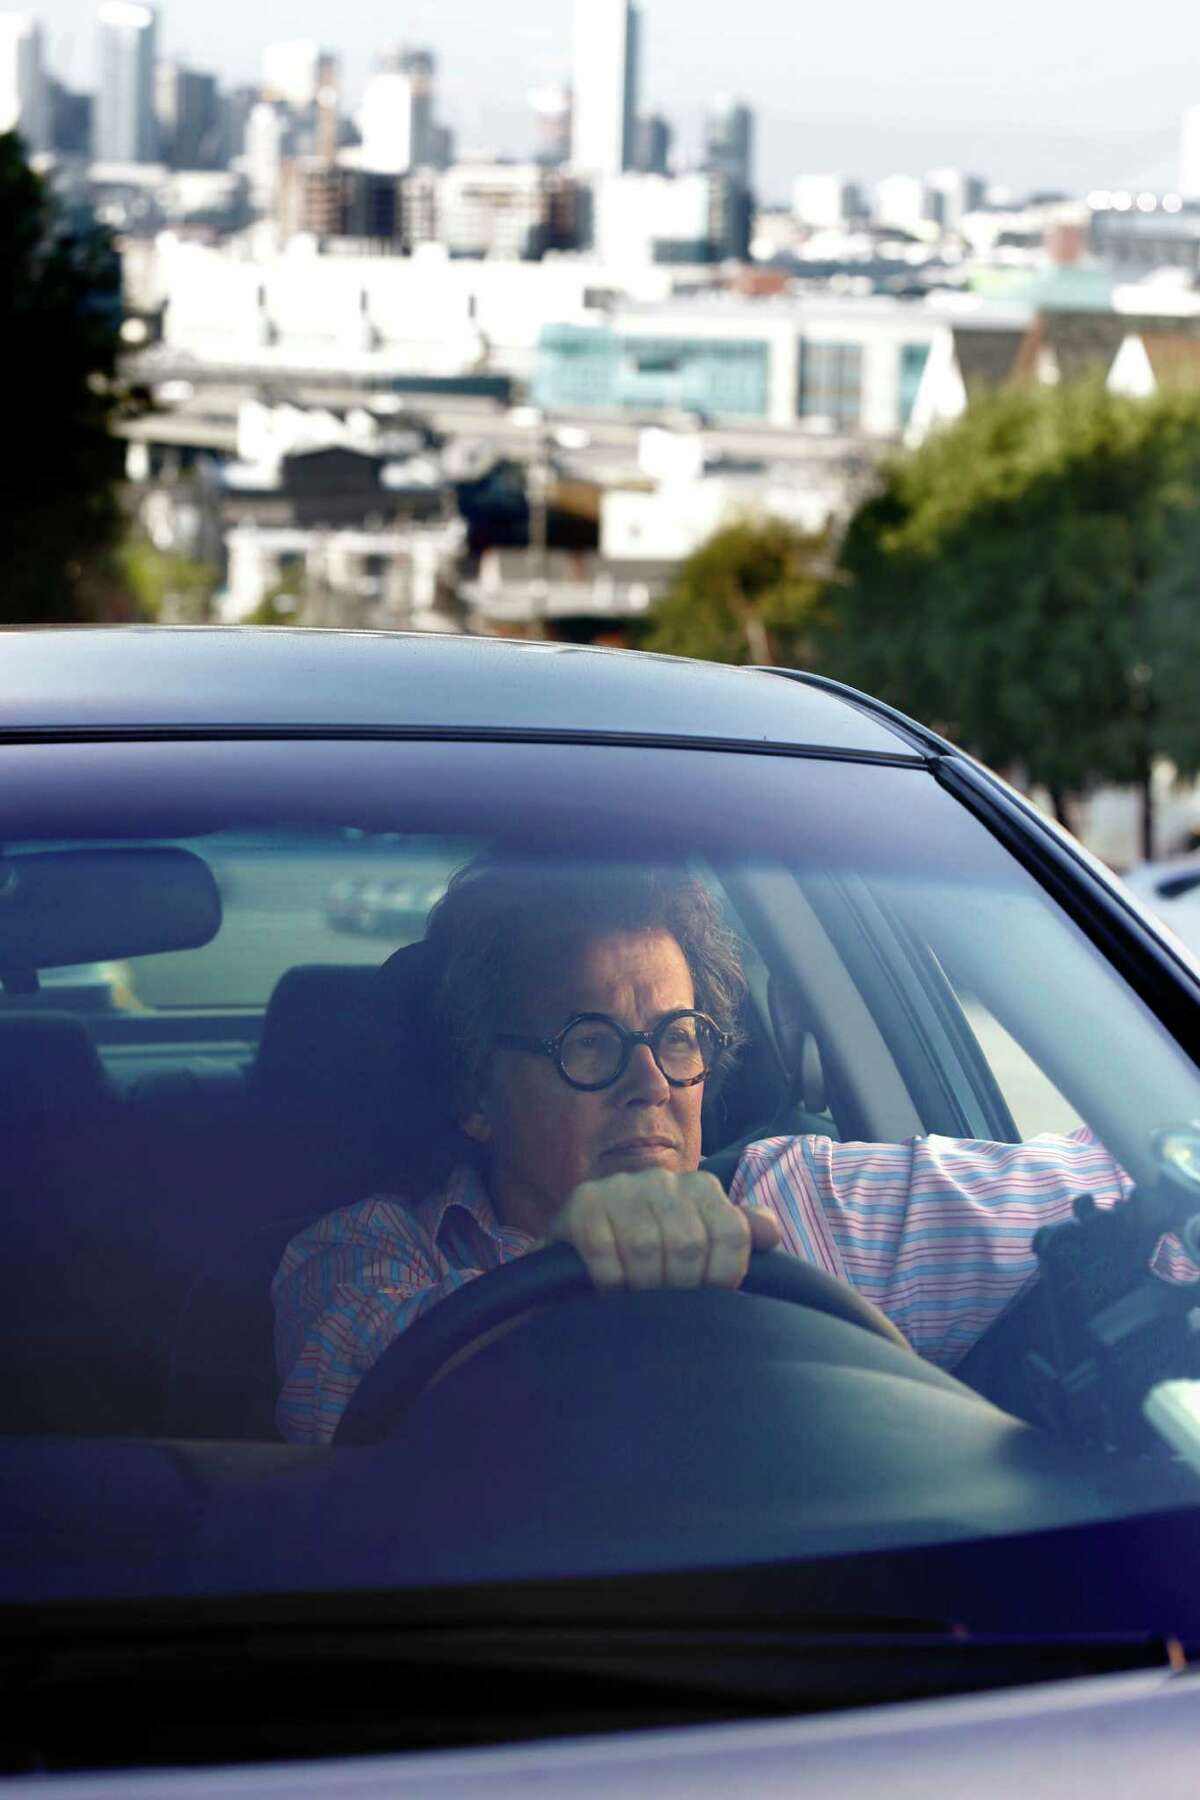 Artist Peter Ashlock, who drives for Uber and Lyft in San Francisco, has some tax headaches.